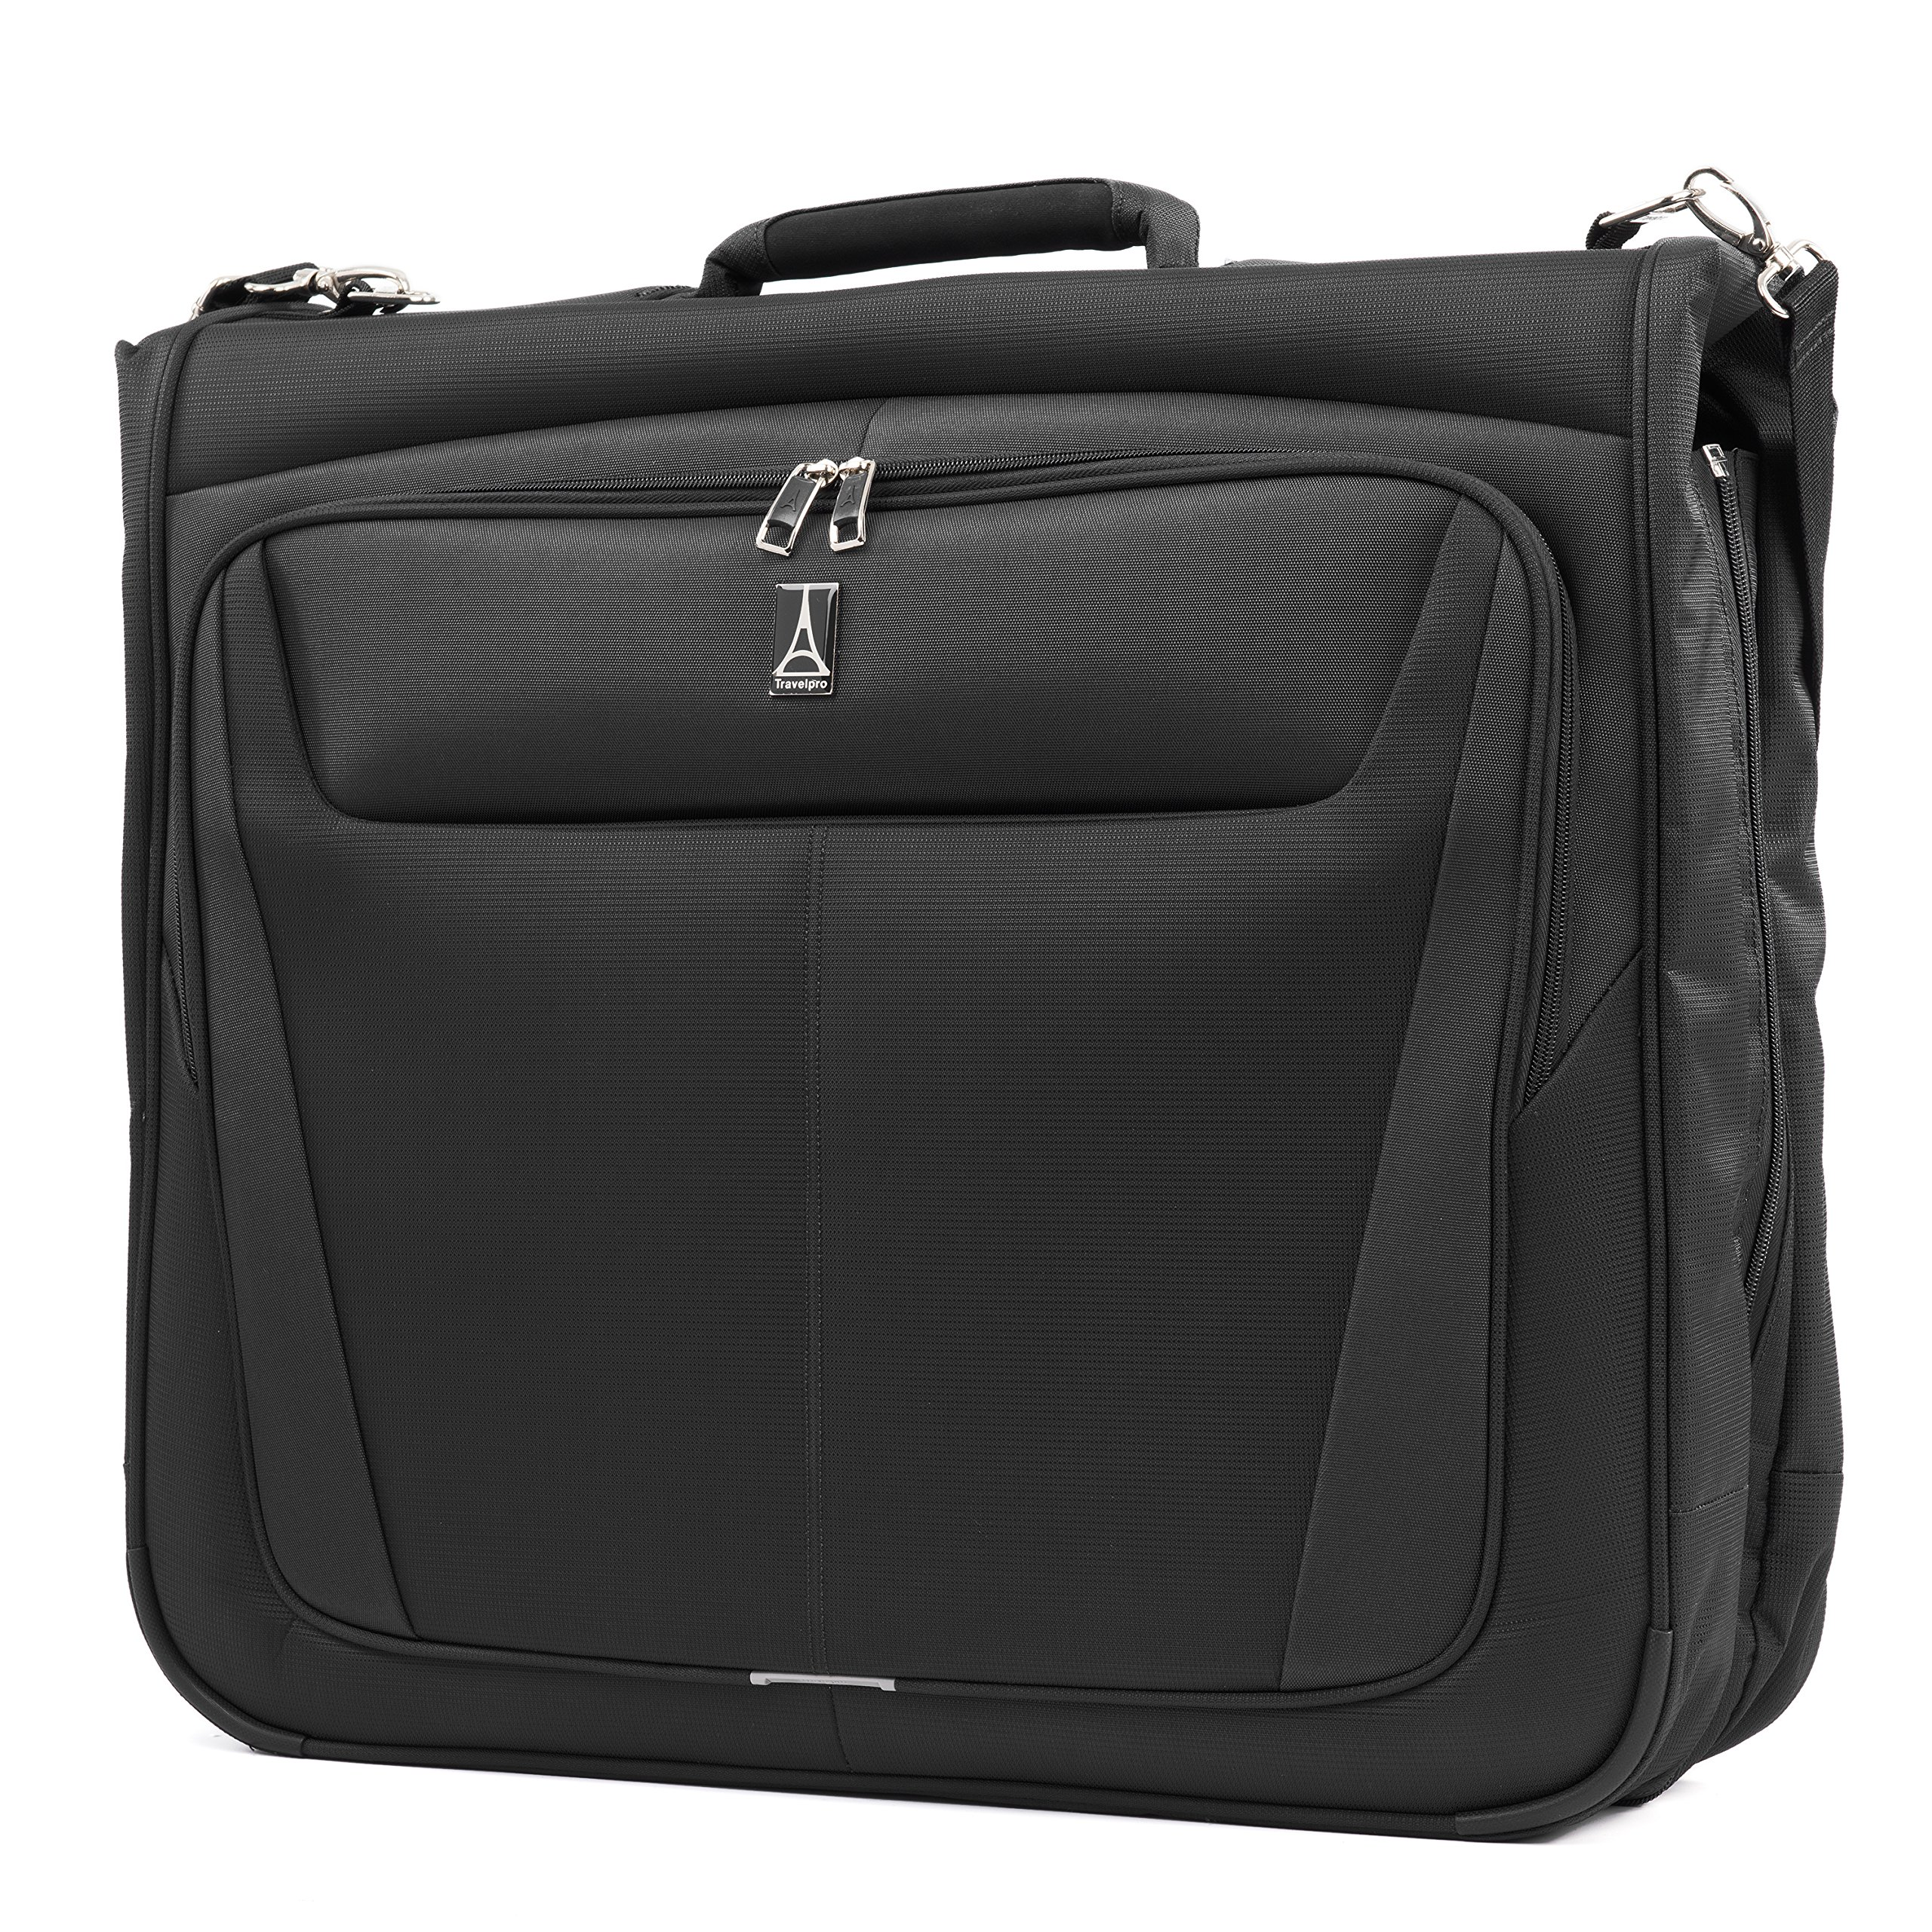 Travelpro Luggage Maxlite 5 22'' Lightweight Bi-Fold Carry-on Garment Bag, Suitcase, Black